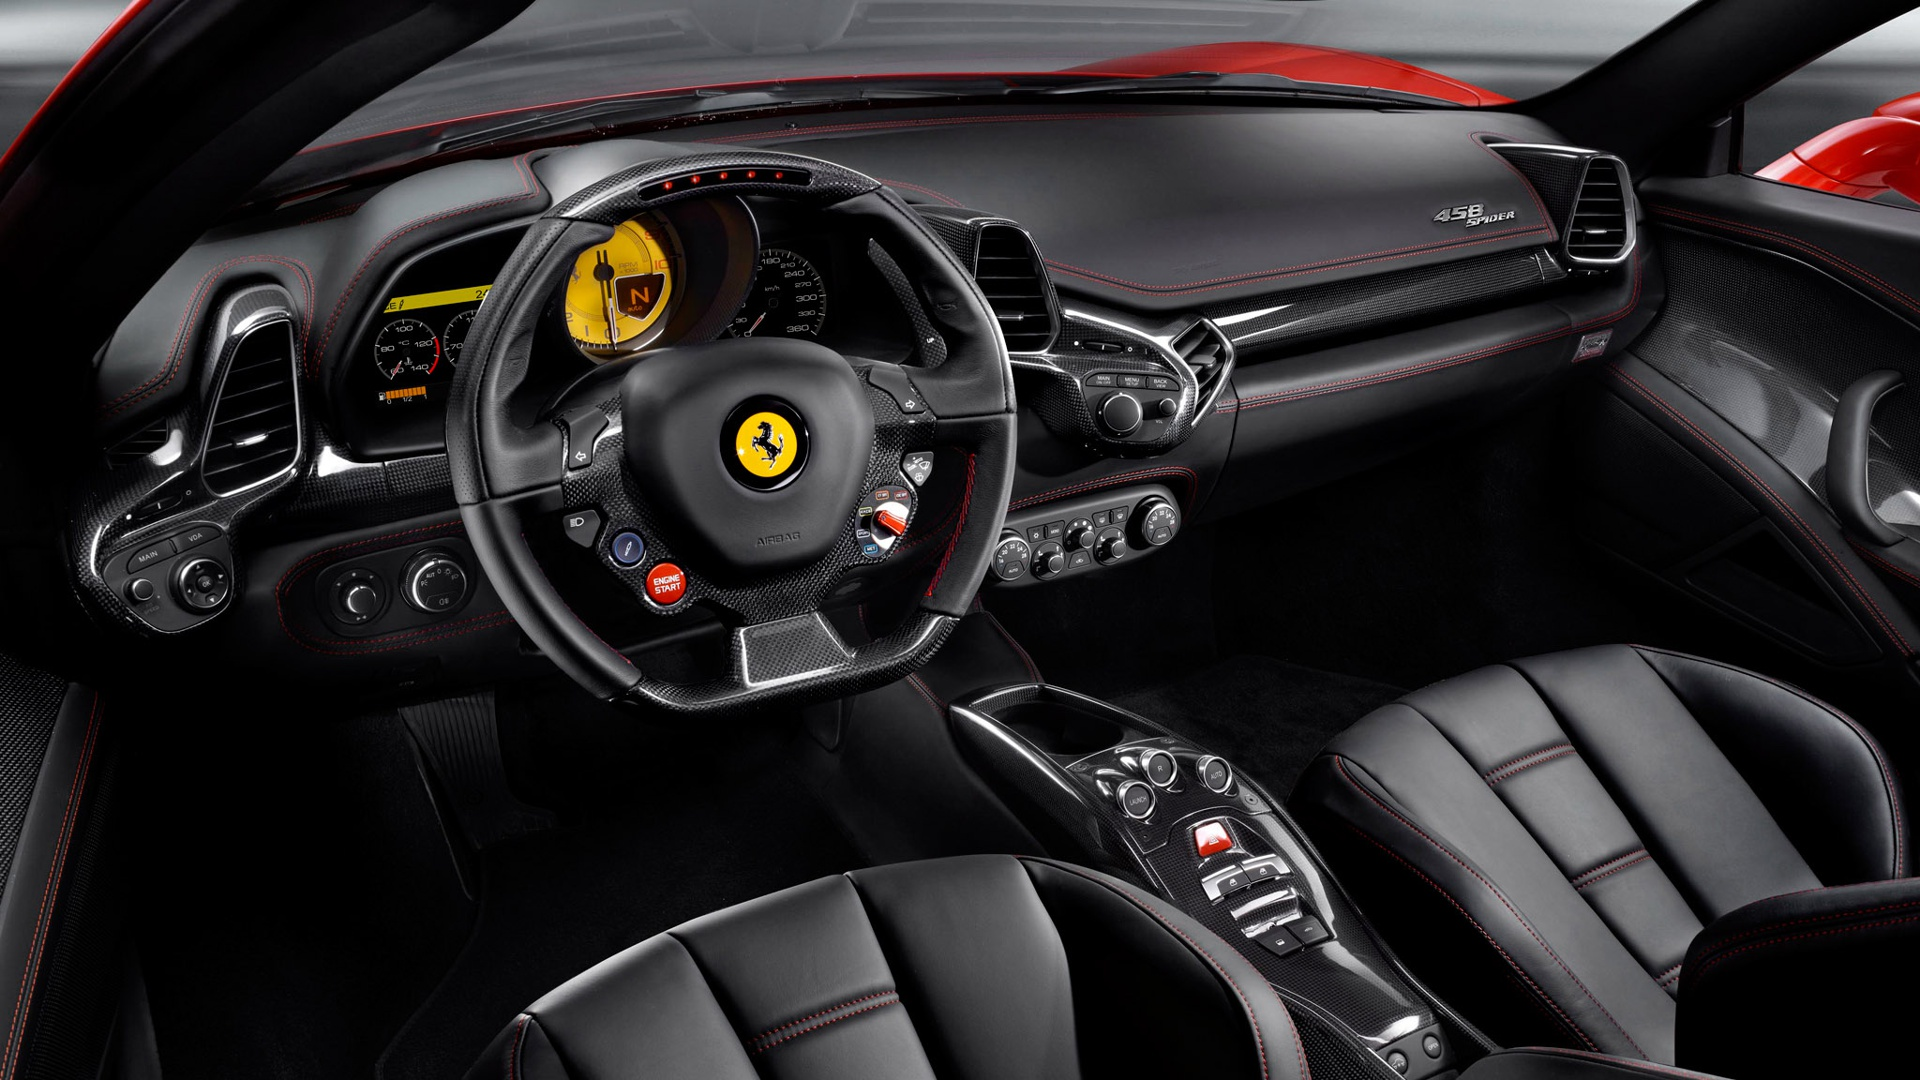 stunning ferrari interior wallpaper 45801